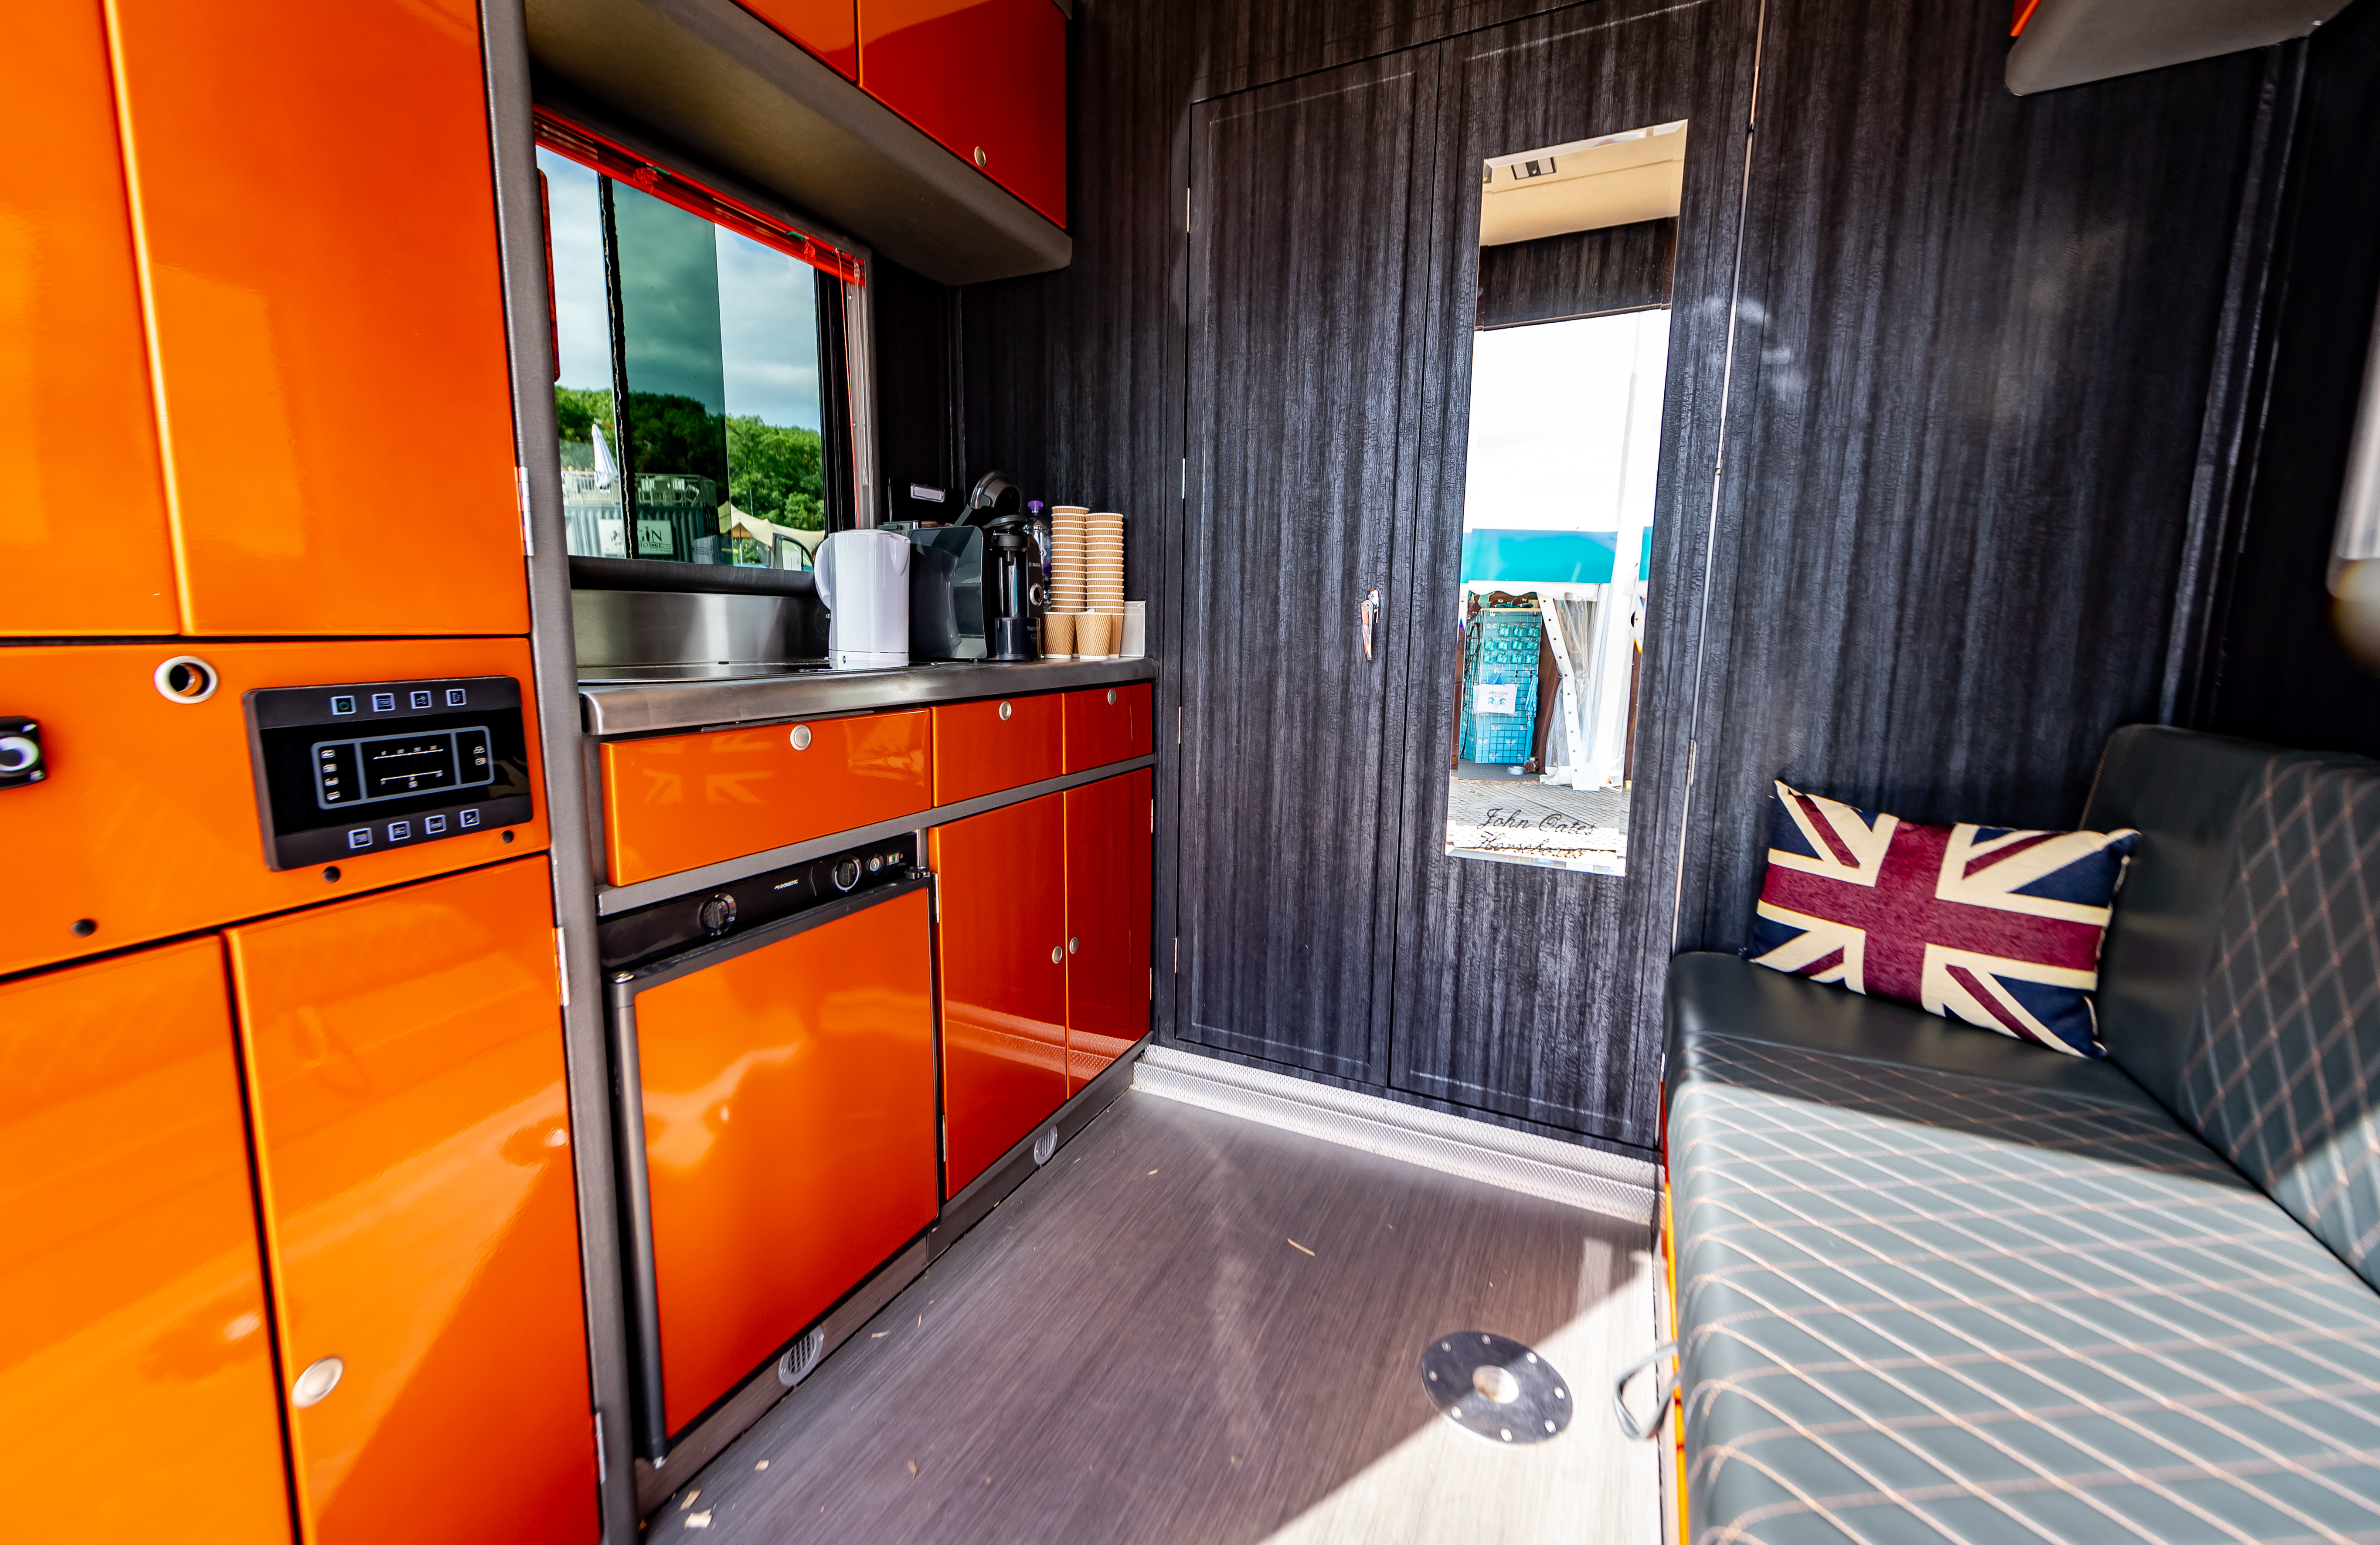 Horsebox Interior with Orange Kitchen